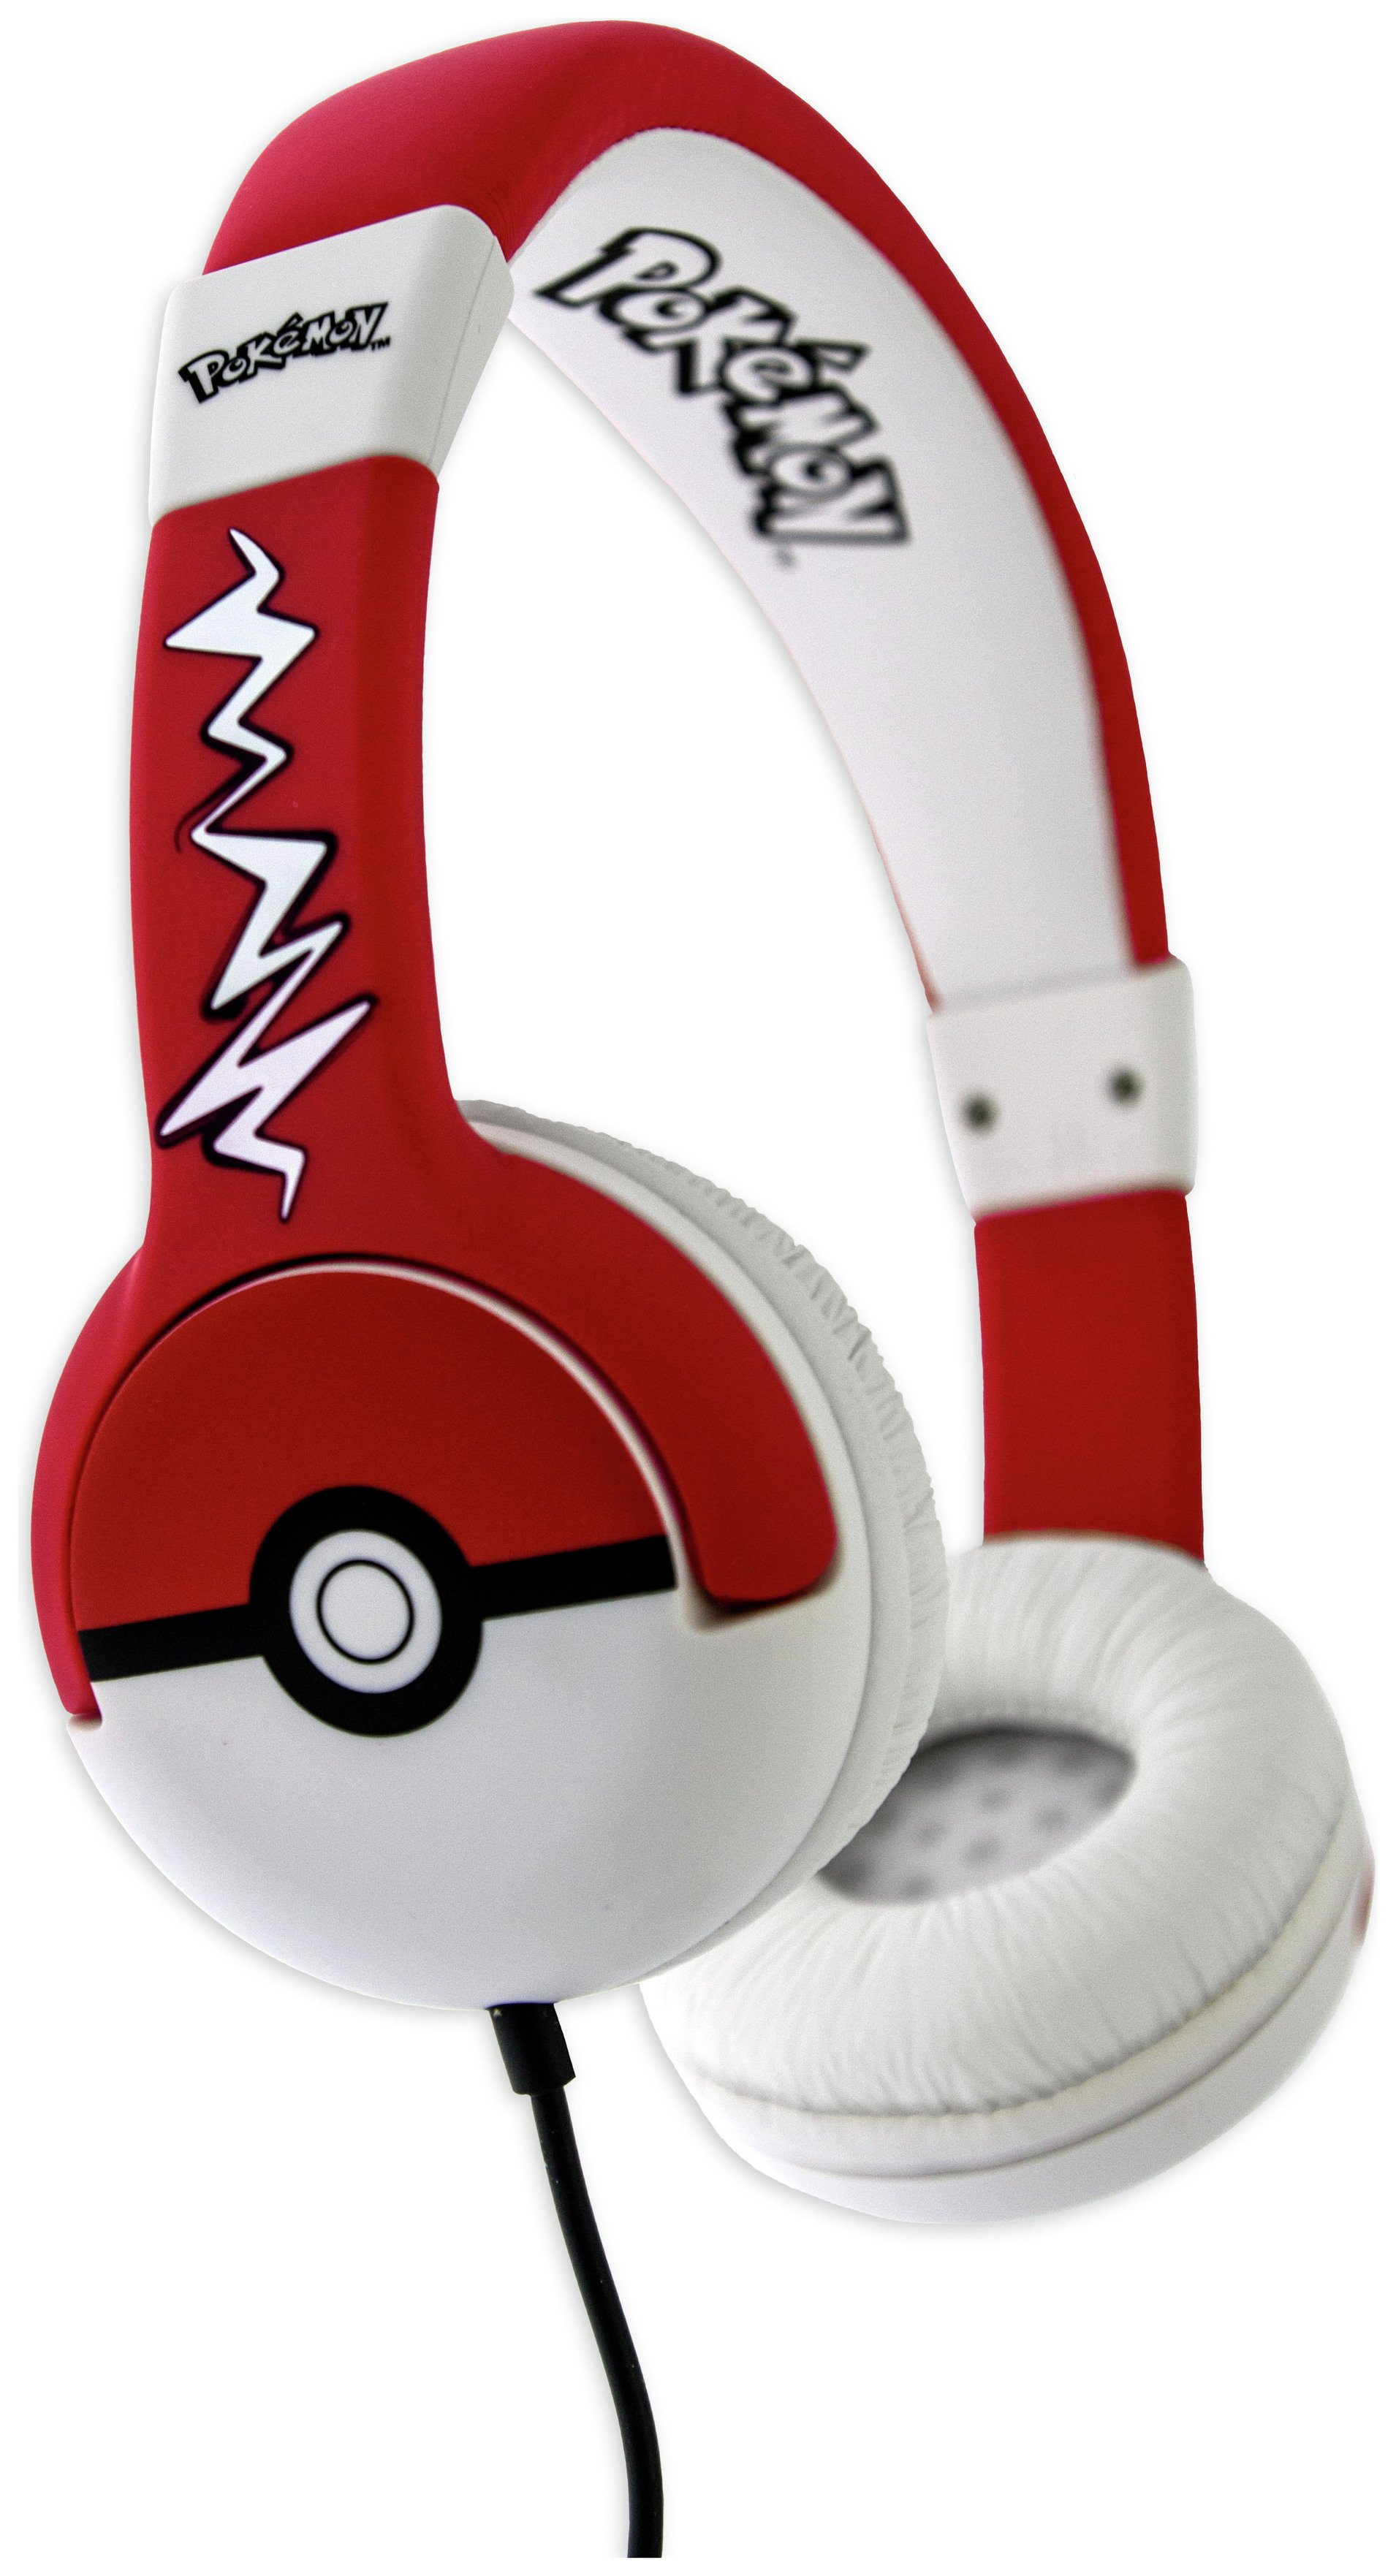 Pokemon Pokeball Kids On-Ear Headphones - Black / Red from Pokemon